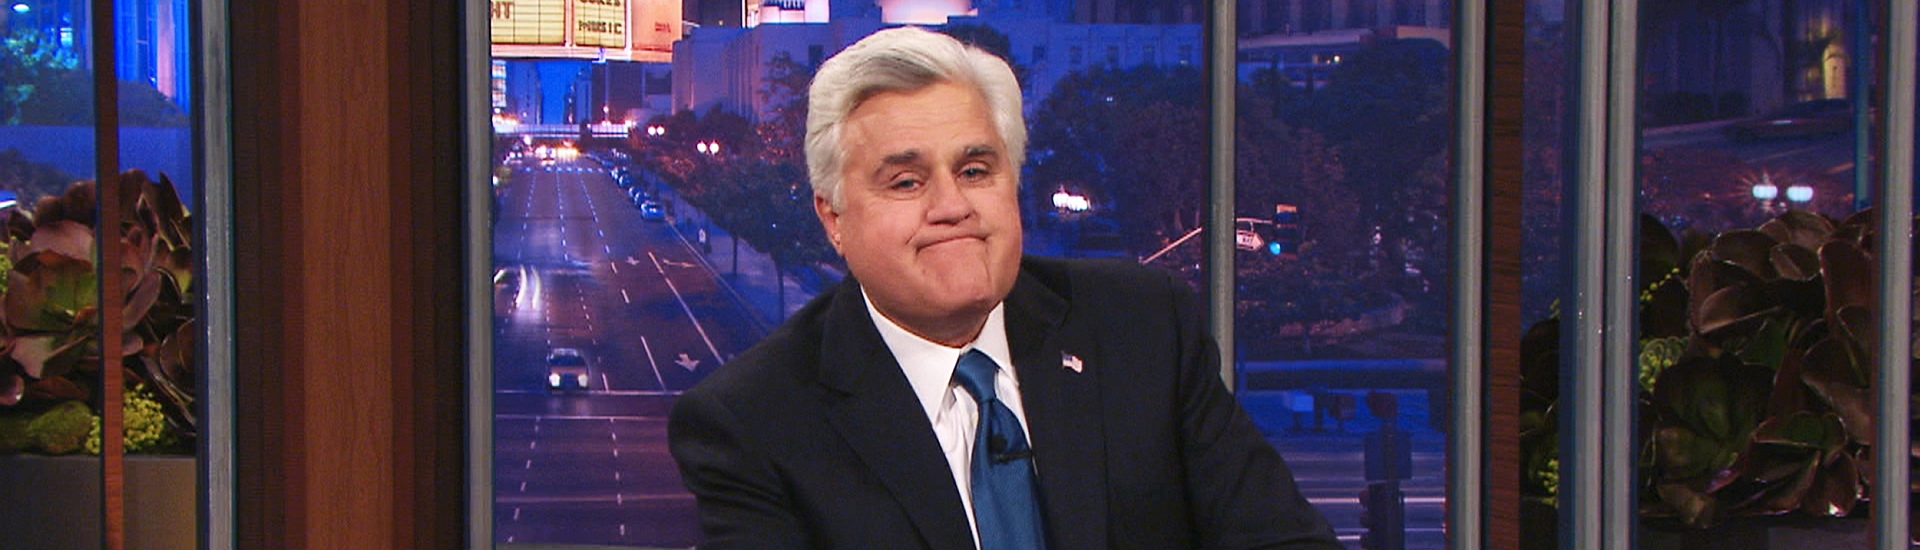 See Jay Leno LIVE in Branson, Missouri!